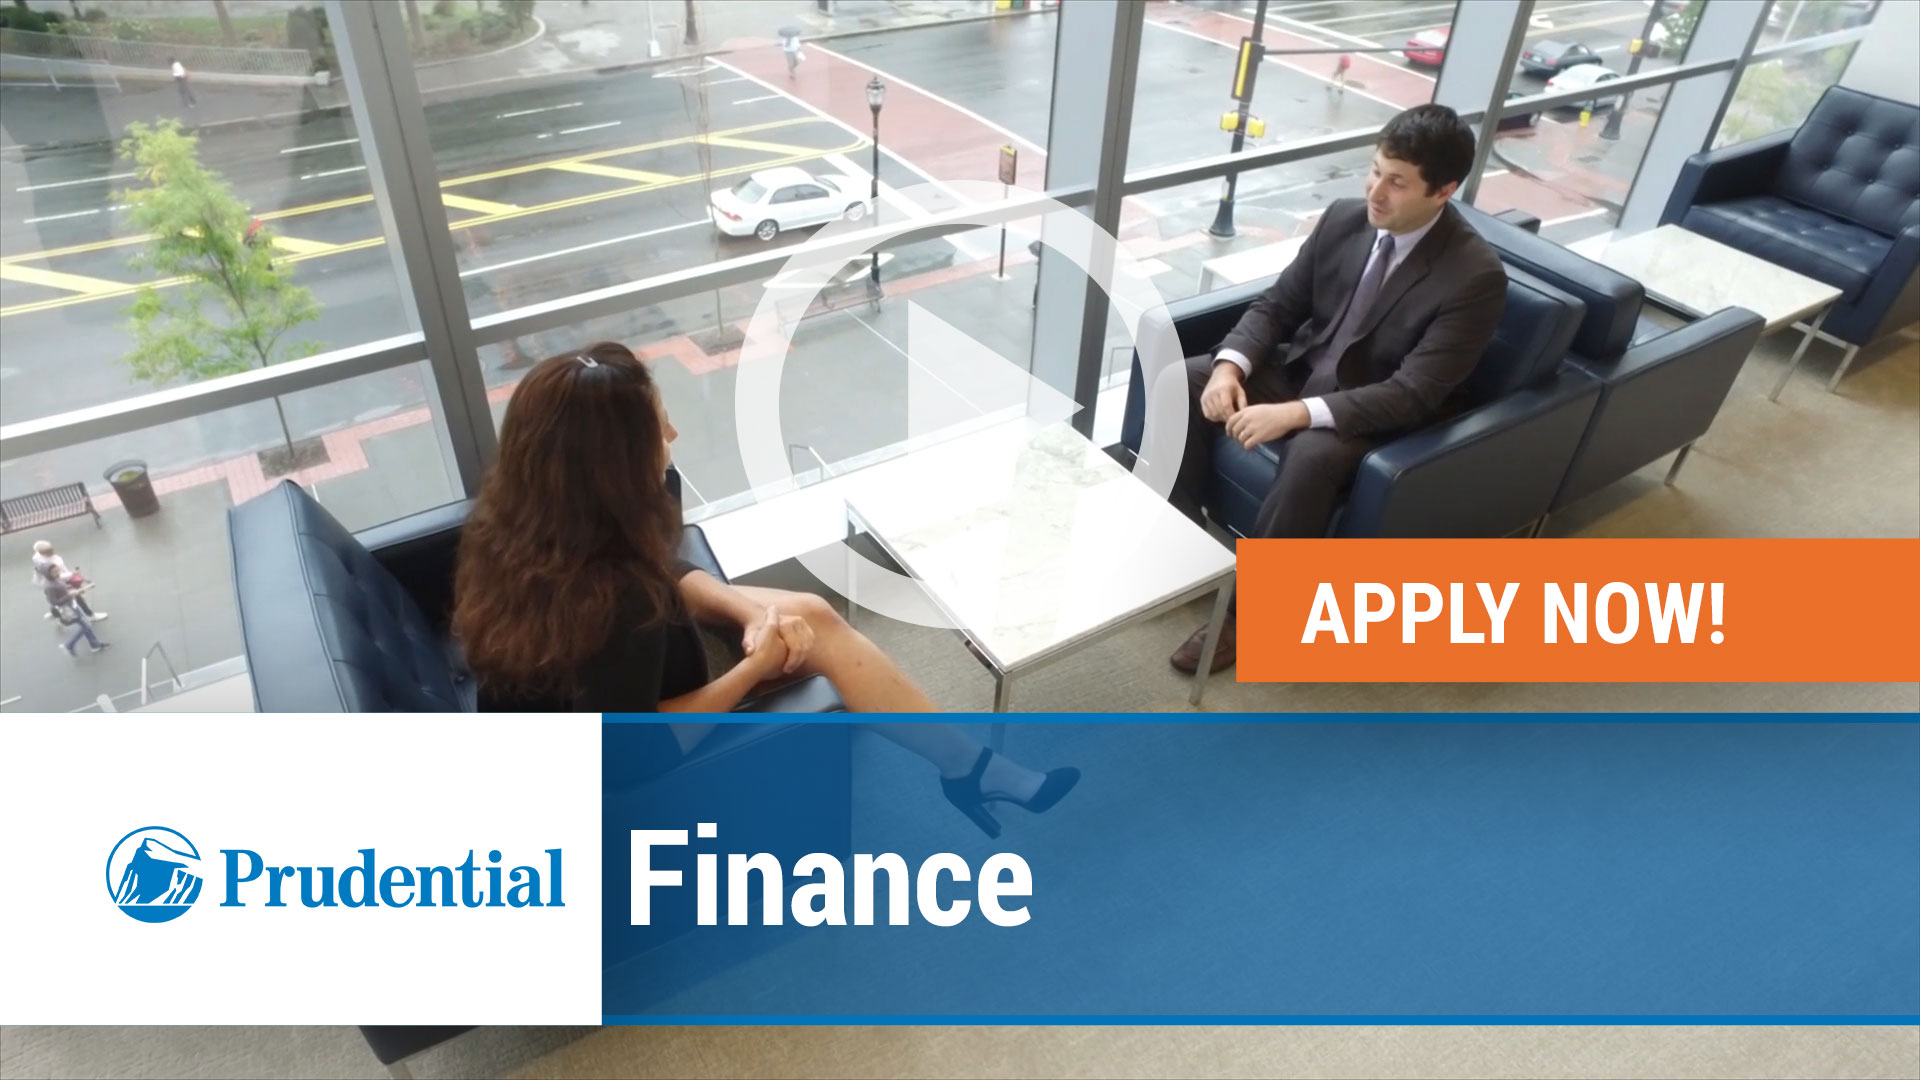 Watch our careers video for available job opening Finance in Newark, NJ